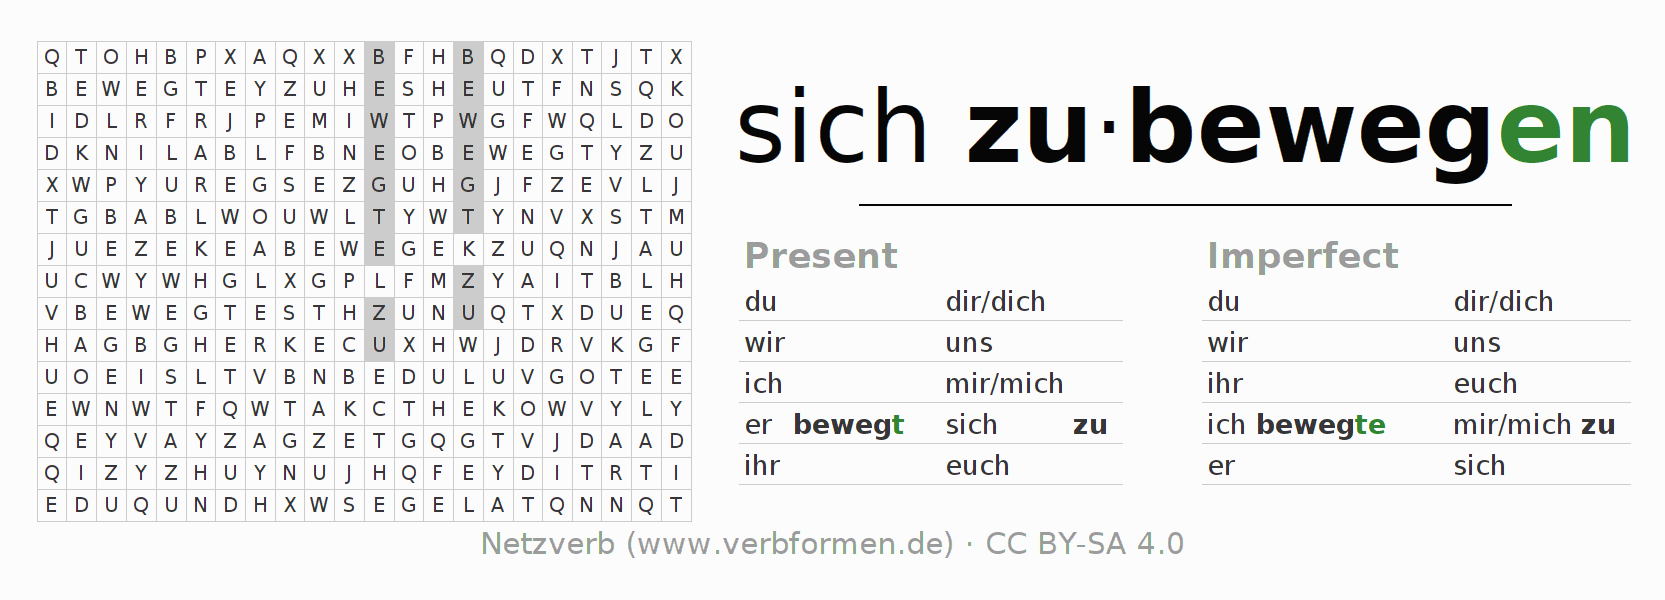 Word search puzzle for the conjugation of the verb sich zubewegen